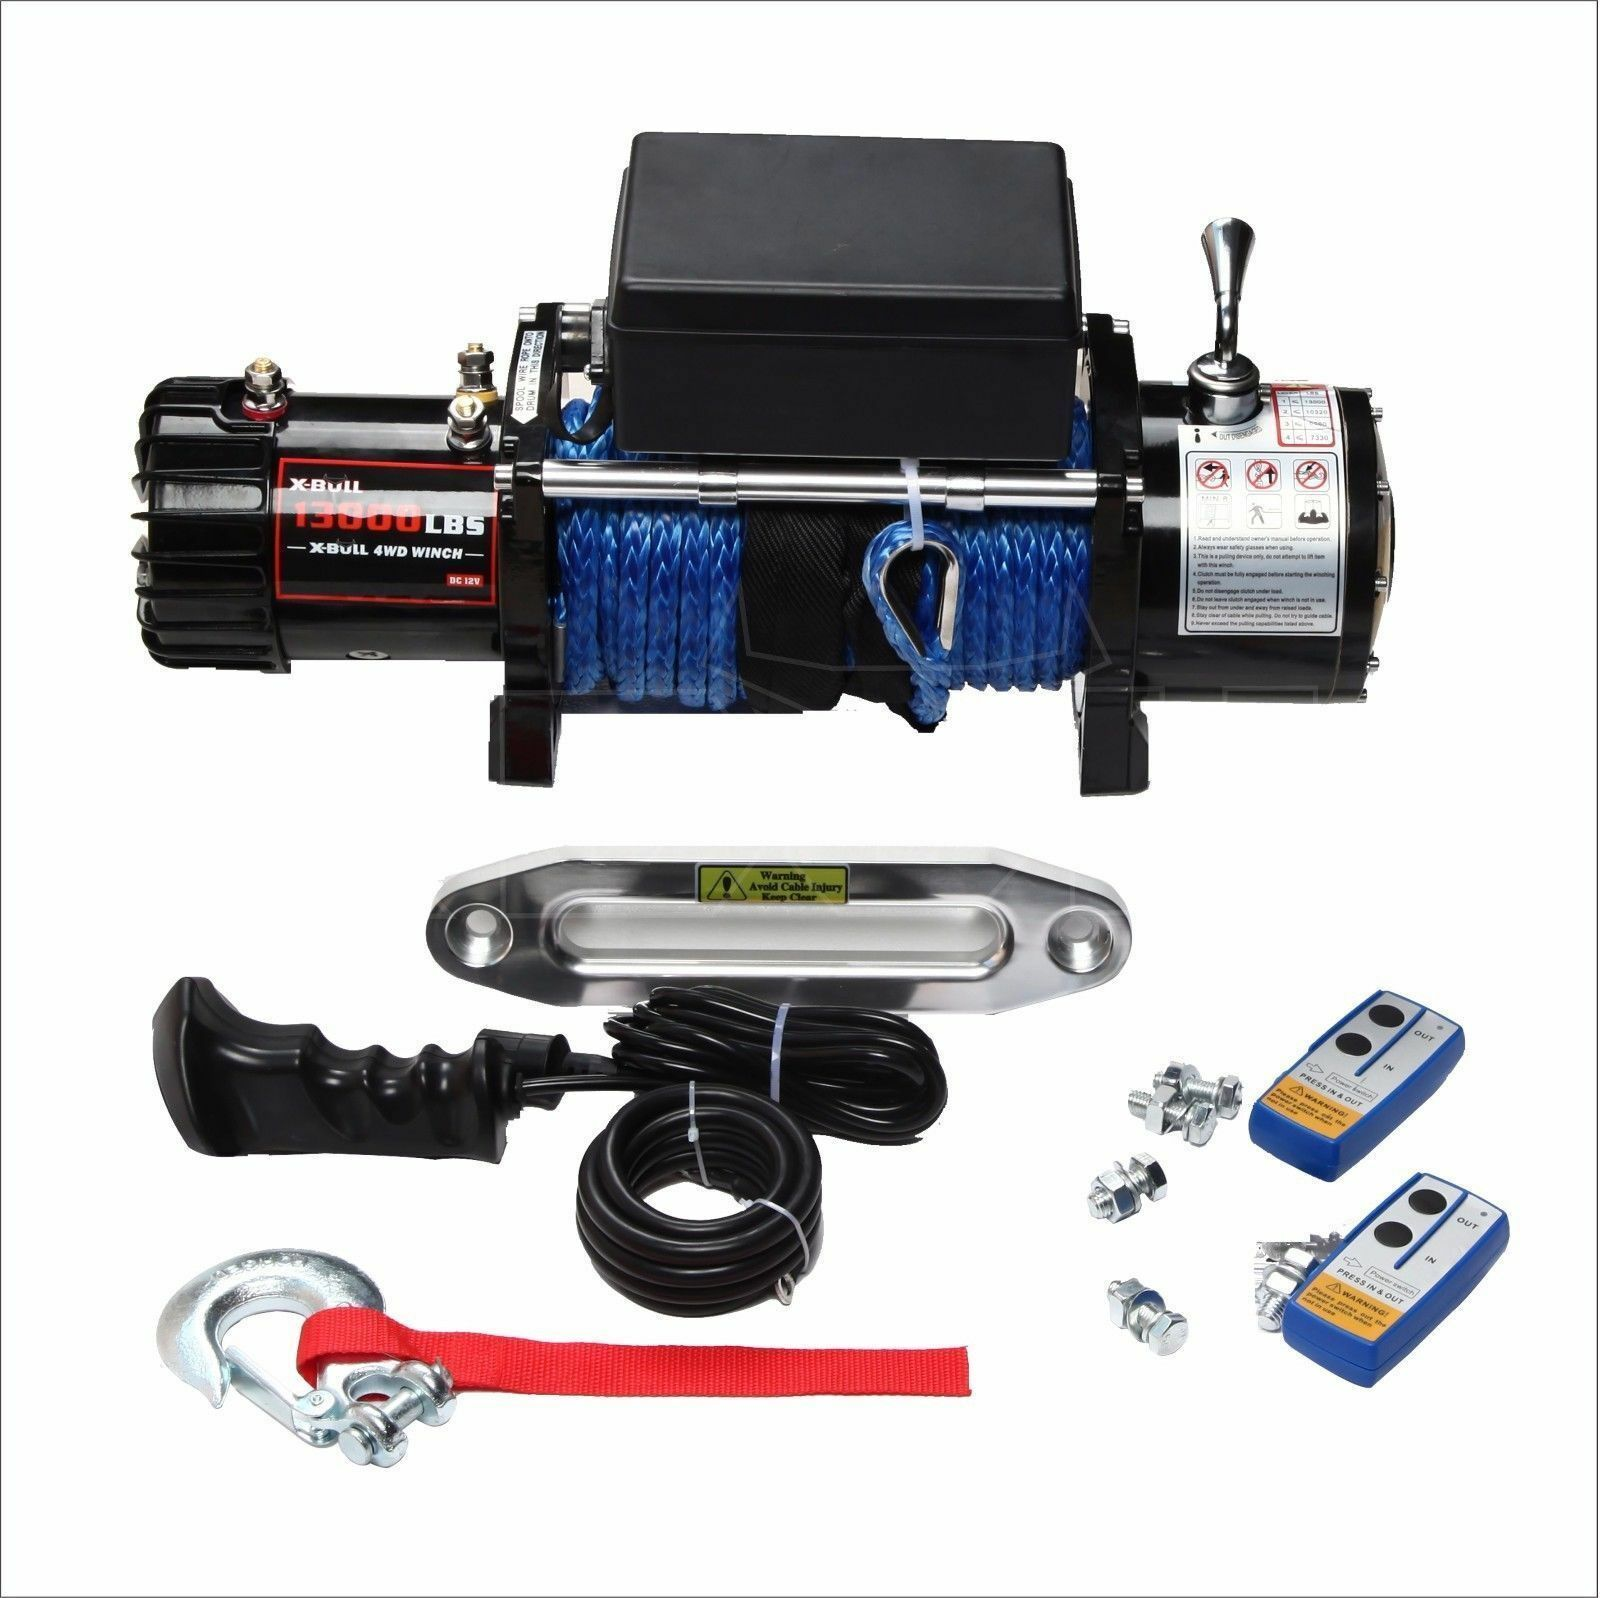 X Bull 12v Synthetic Rope Winch 13000 Lb Load Capacity Ebay How To Wire A Jeep Stock Photo